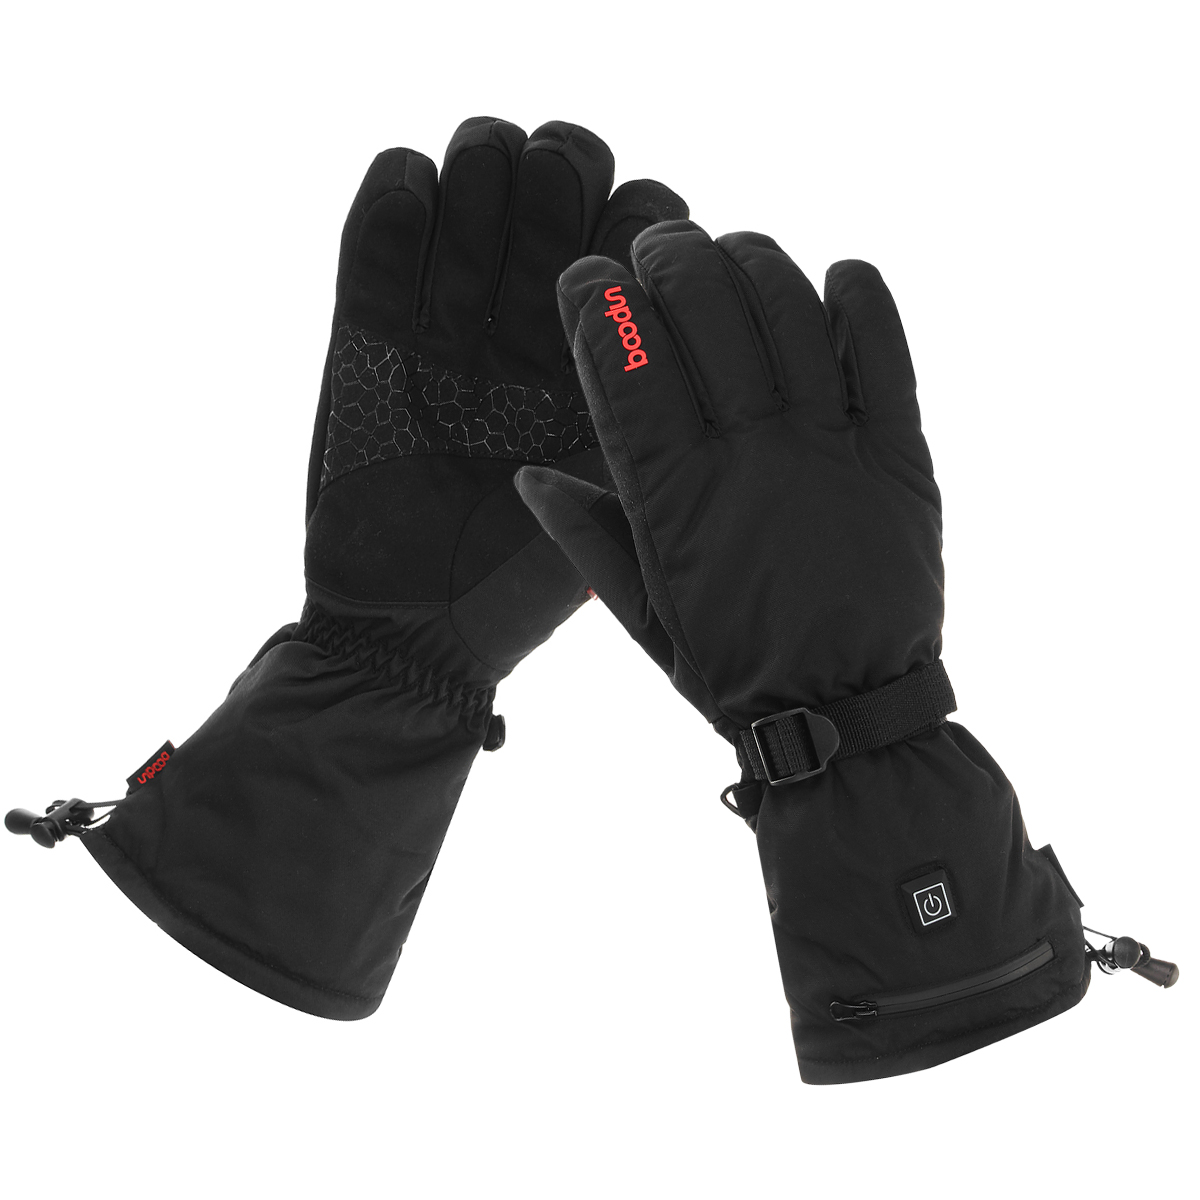 3000MAh Rechargeable Electric Heating Gloves Battery Waterproof Skiing Motorcycle Heated Winter Hand Warmer